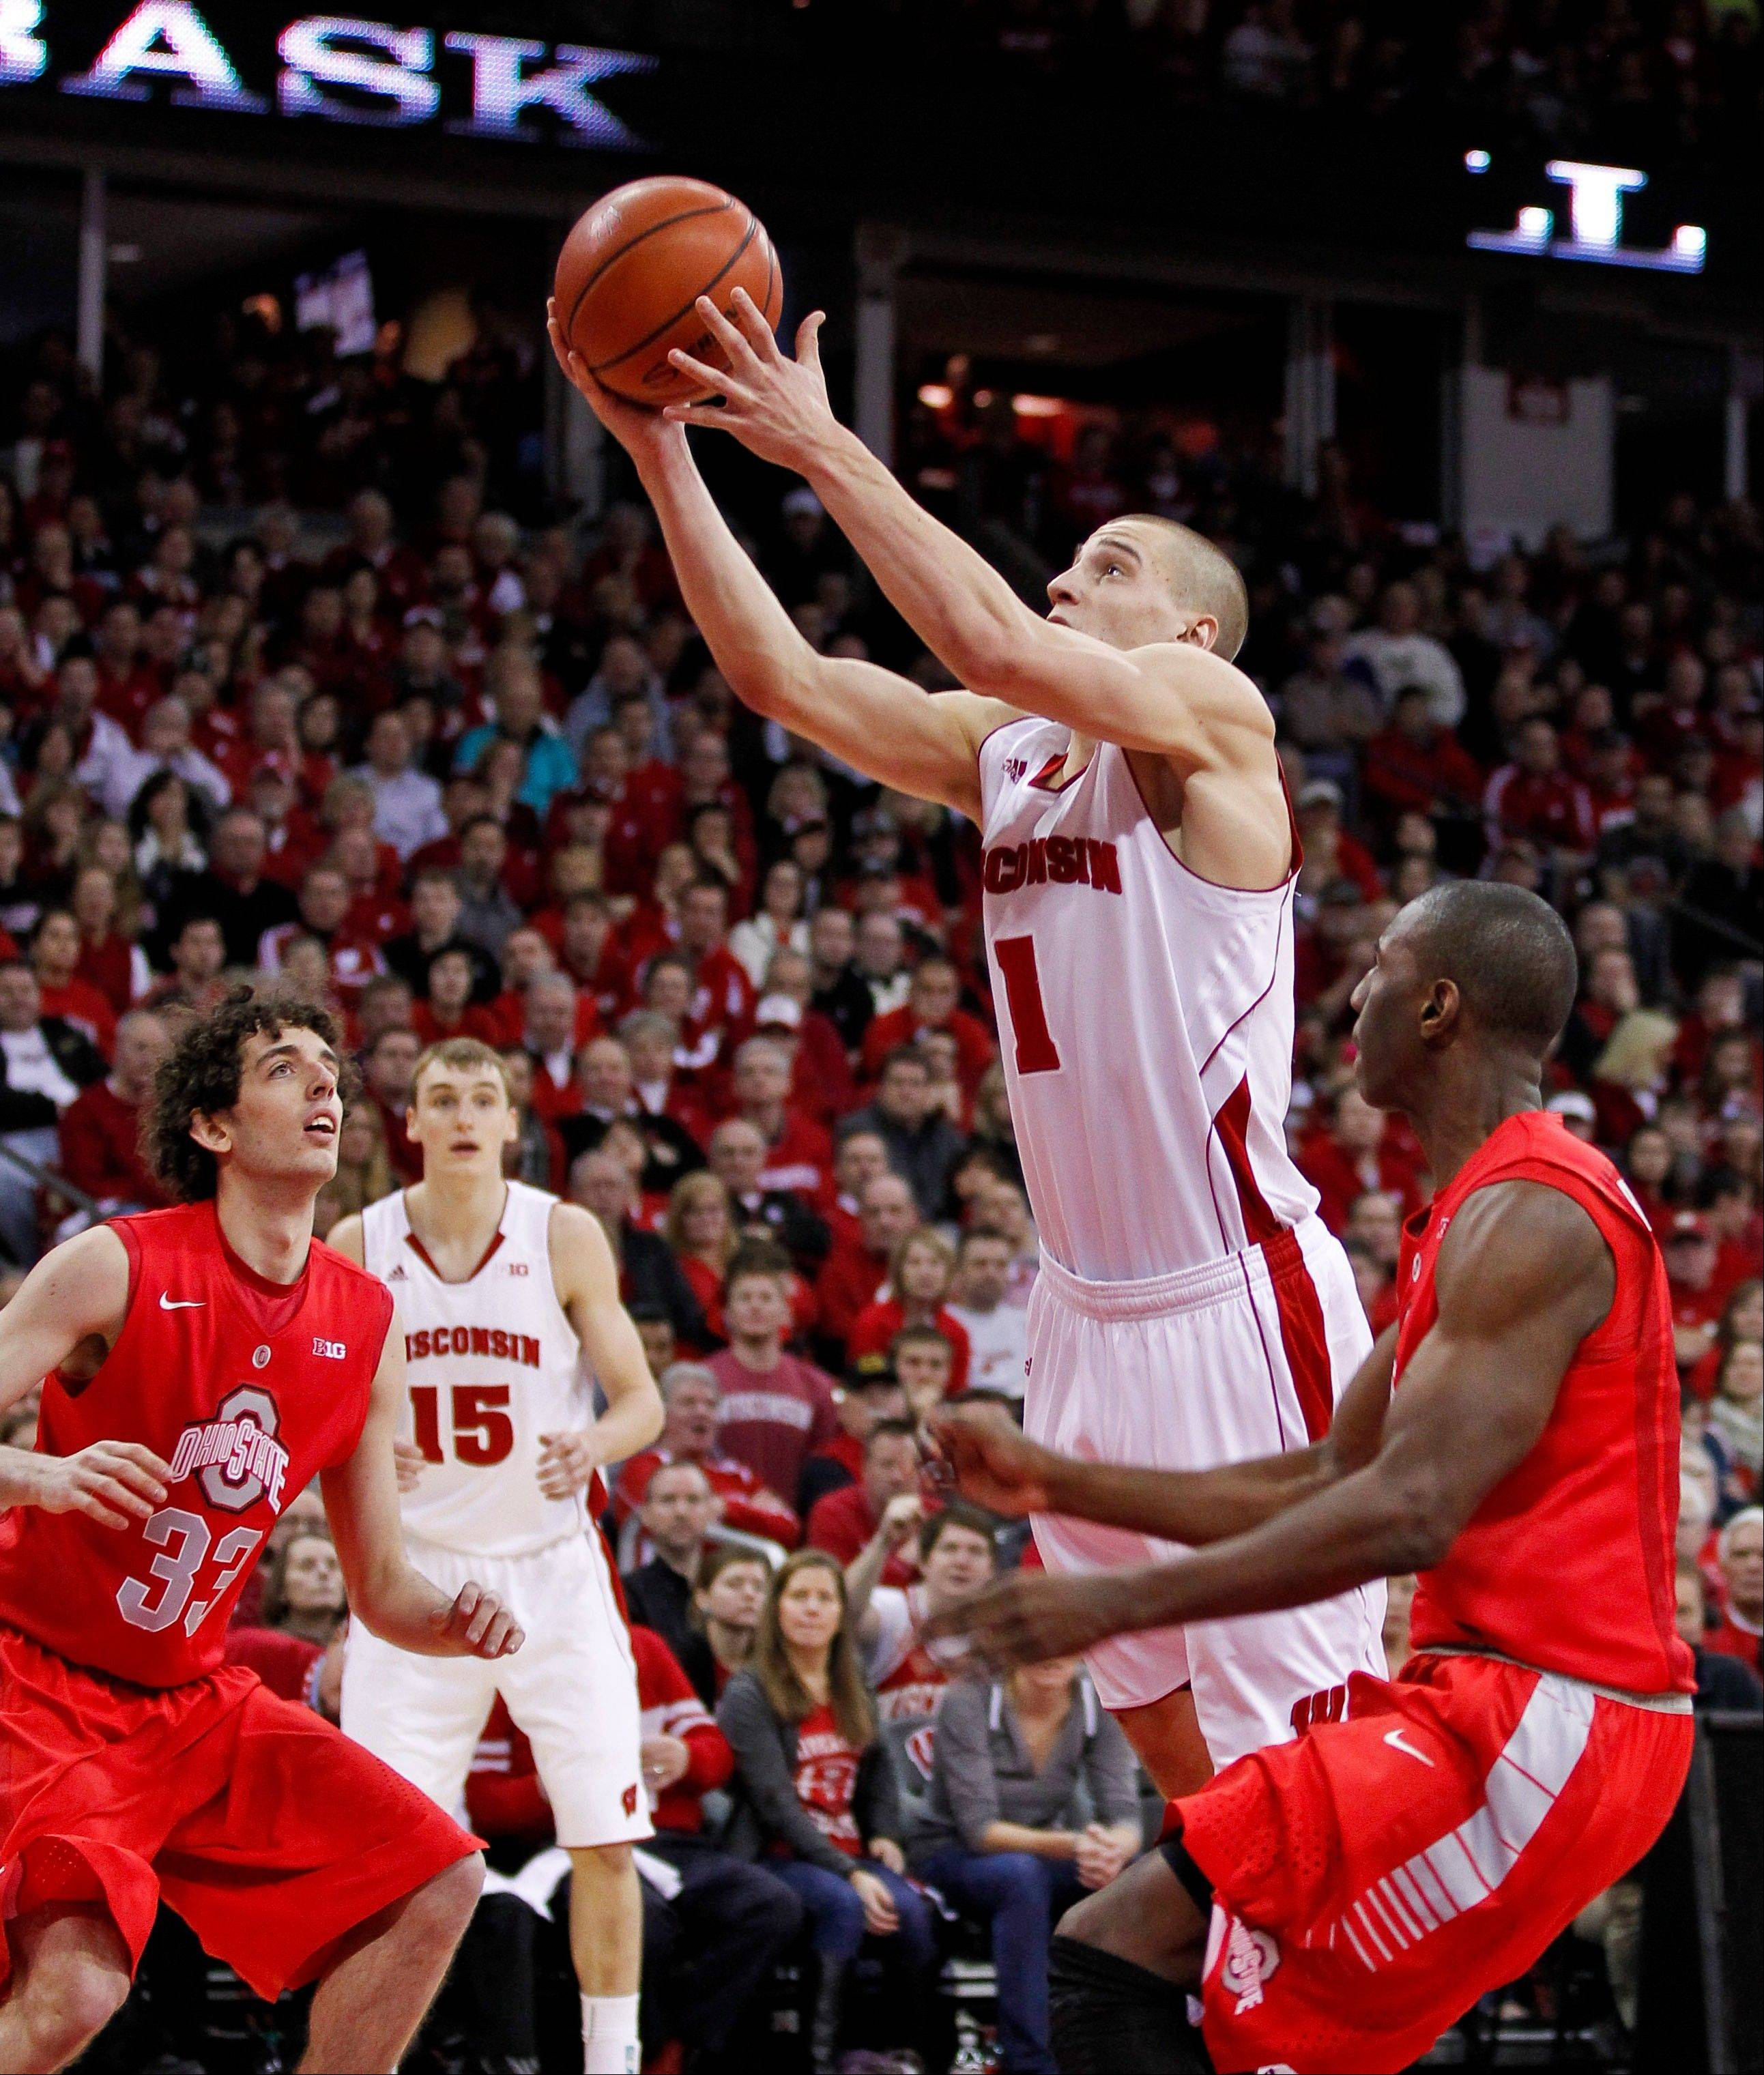 Wisconsin guard Ben Brust (1), a Mundelein grad, helped to lead Wisconsin in its upset over Ohio State Sunday. Now the Badgers take on Northwestern on Wednesday.